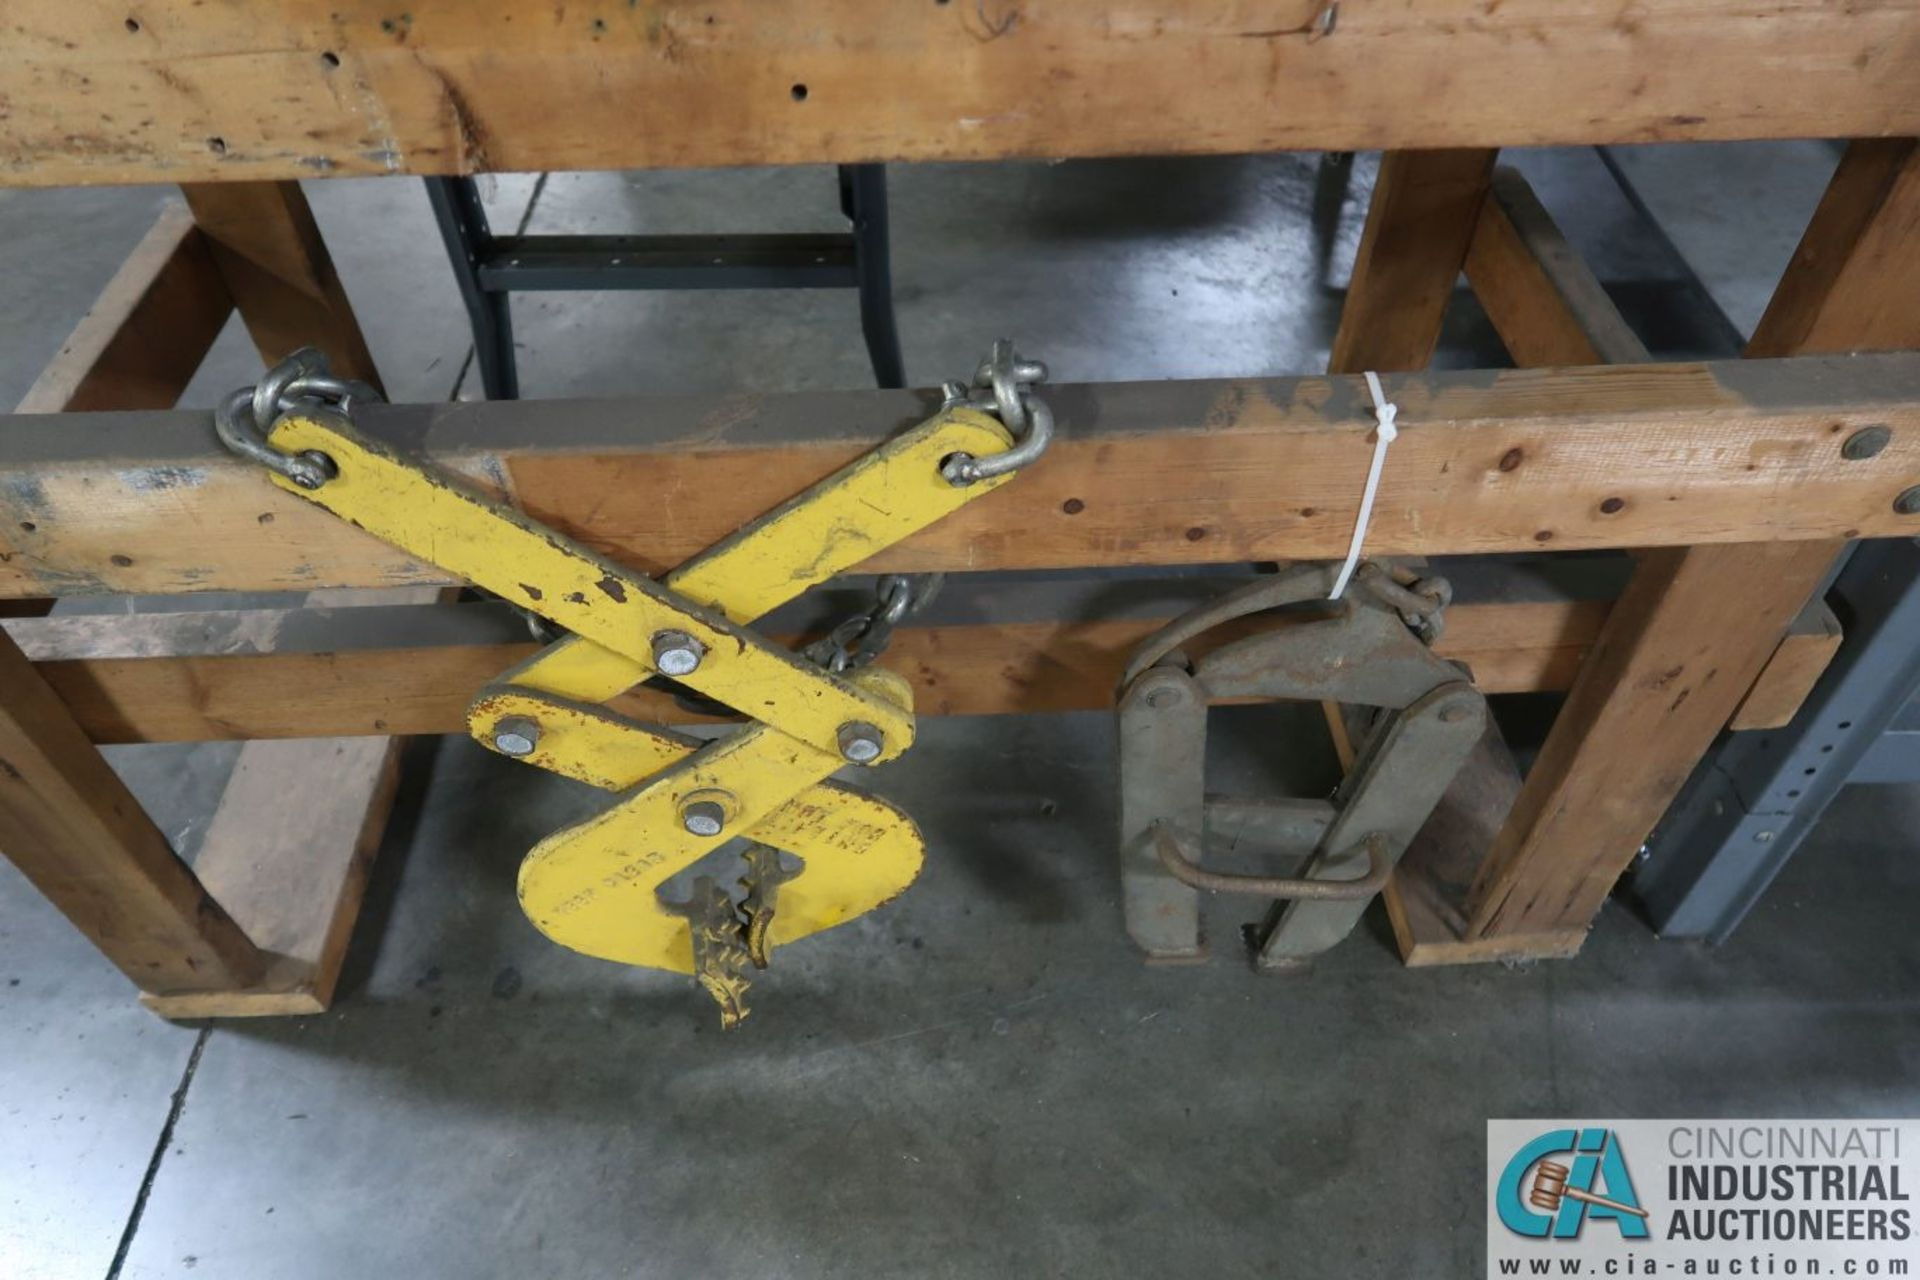 (LOT) PIPE WRENCH, BOLT CUTTERS, CRIMPERS, PIPE CUTTERS AND PALLET PULLERS - Image 4 of 4